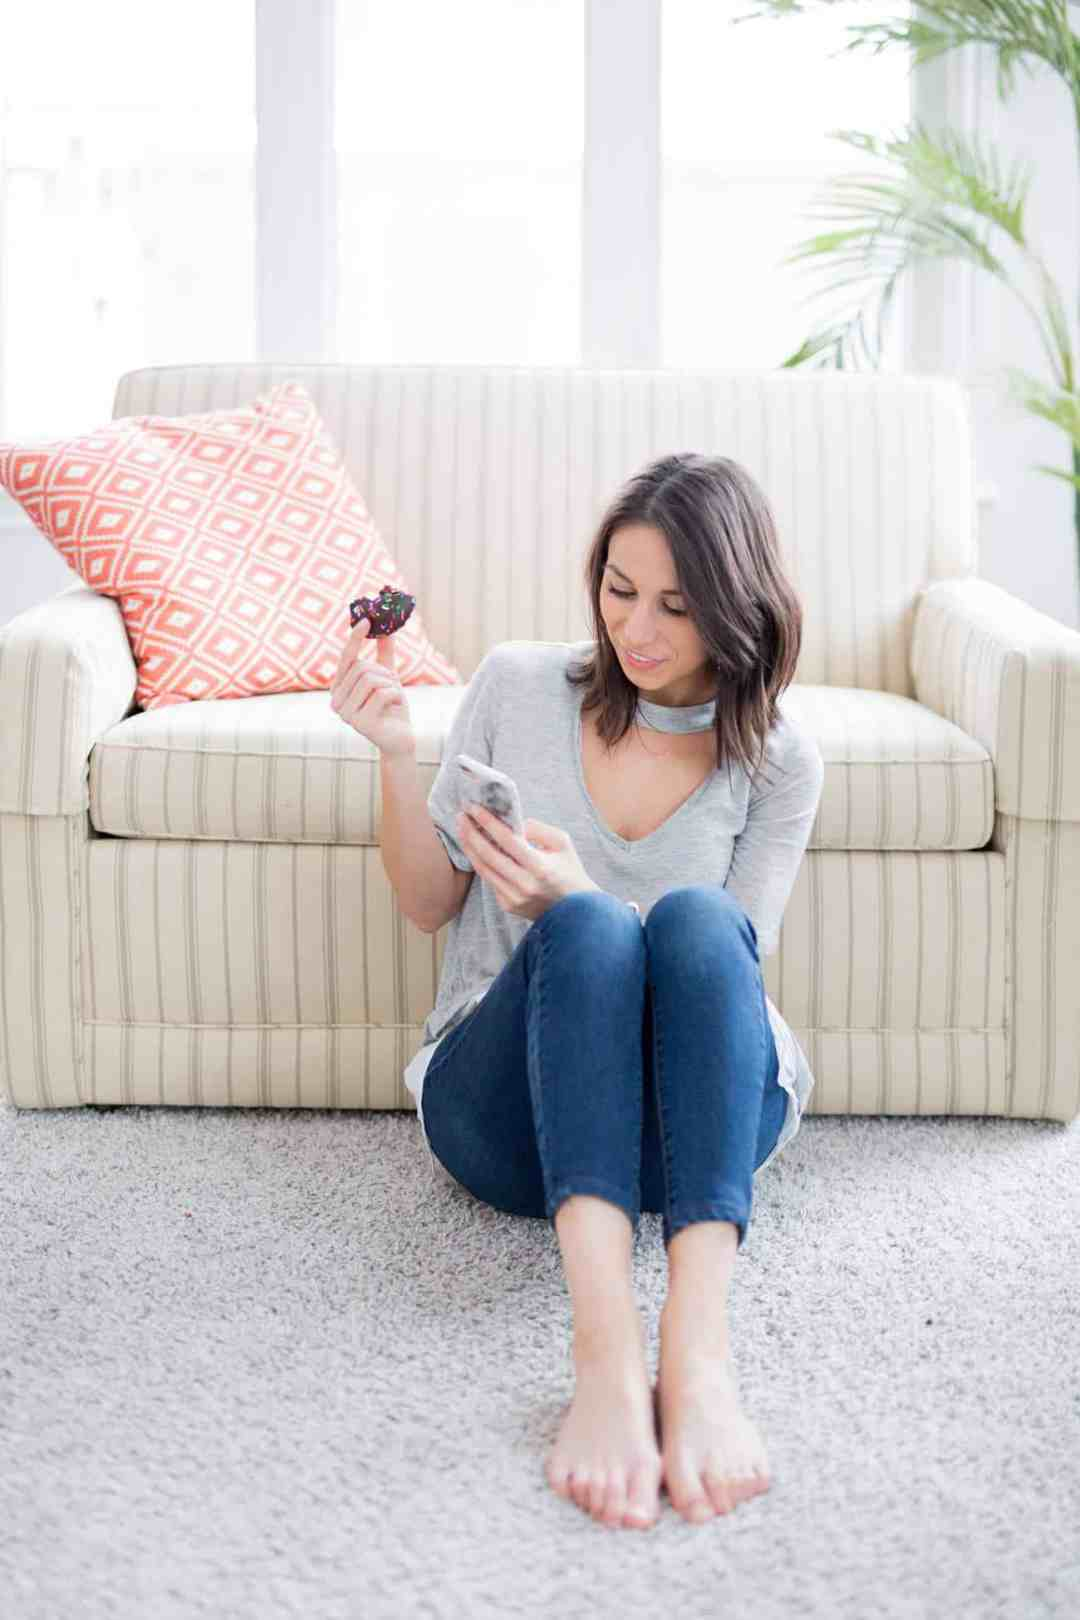 5 Reasons Why Mums Should Get an Instagram Account